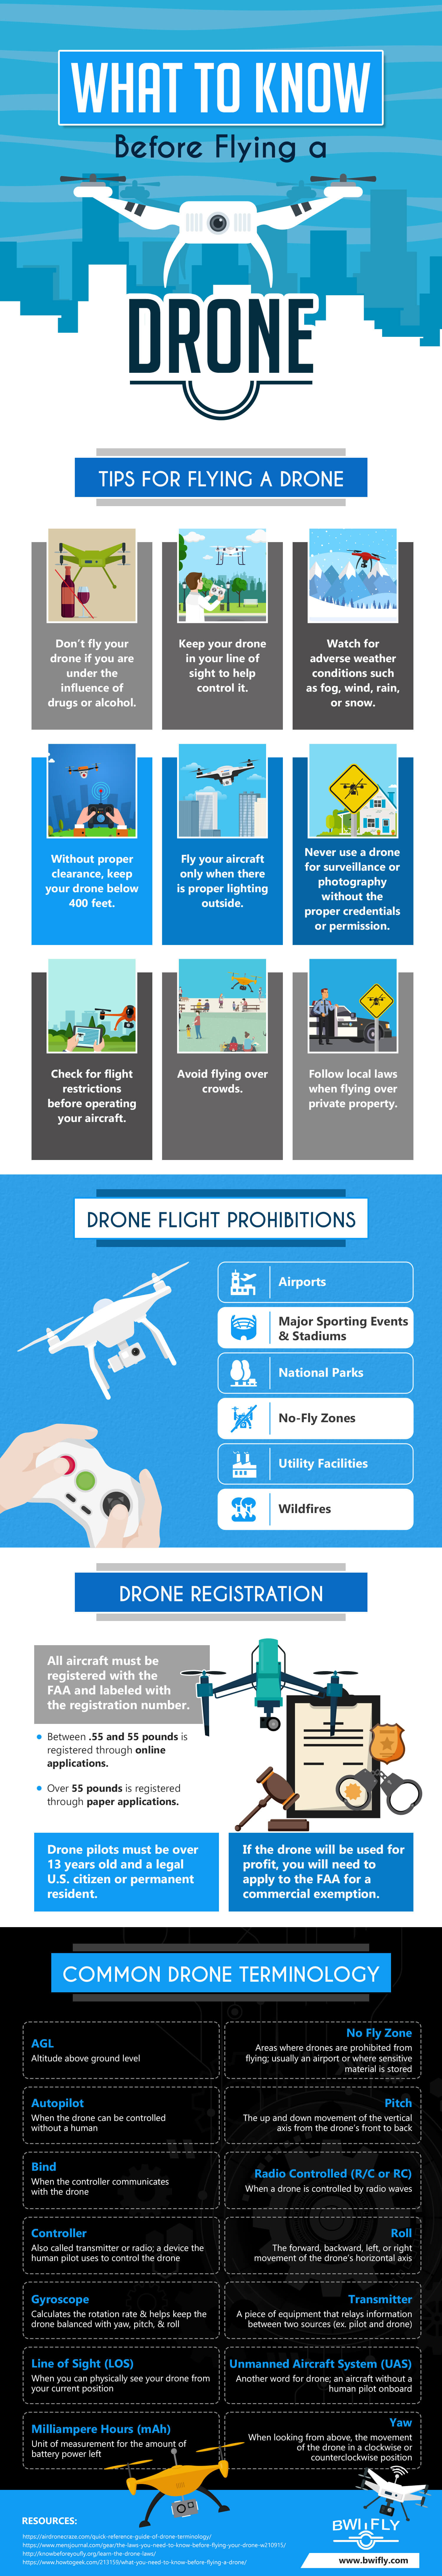 The Age of Drones: Rules and Laws for Flying a Drone - Infographic